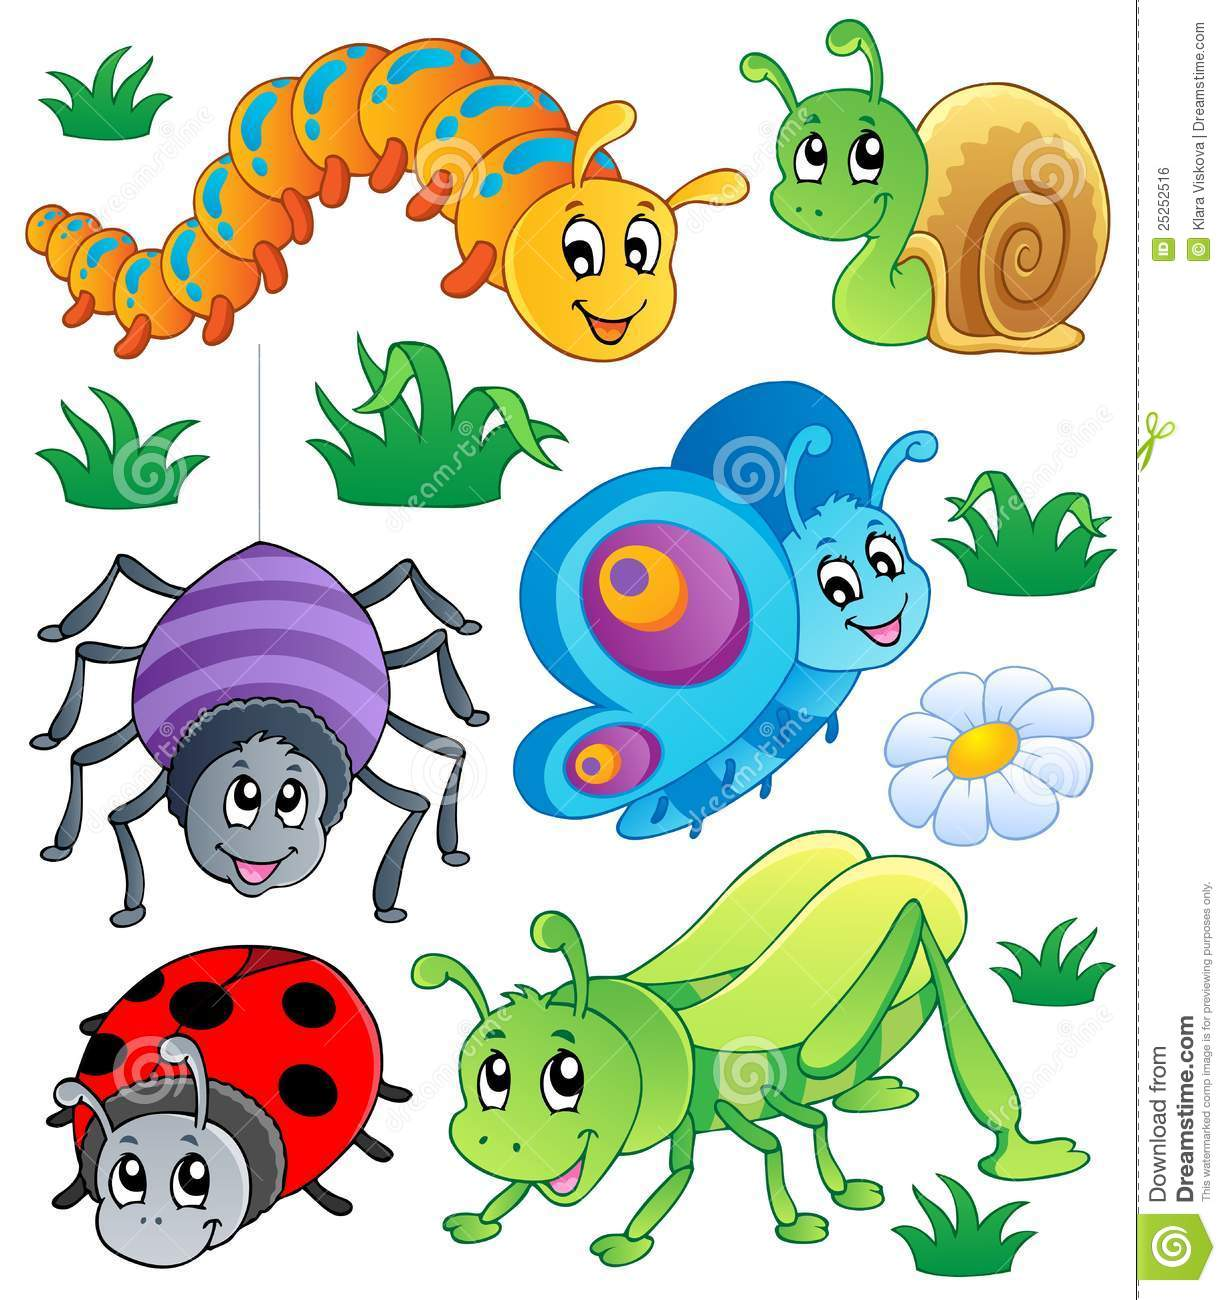 Bugs clipart jungle Cute Clipart Clipart Insect Download